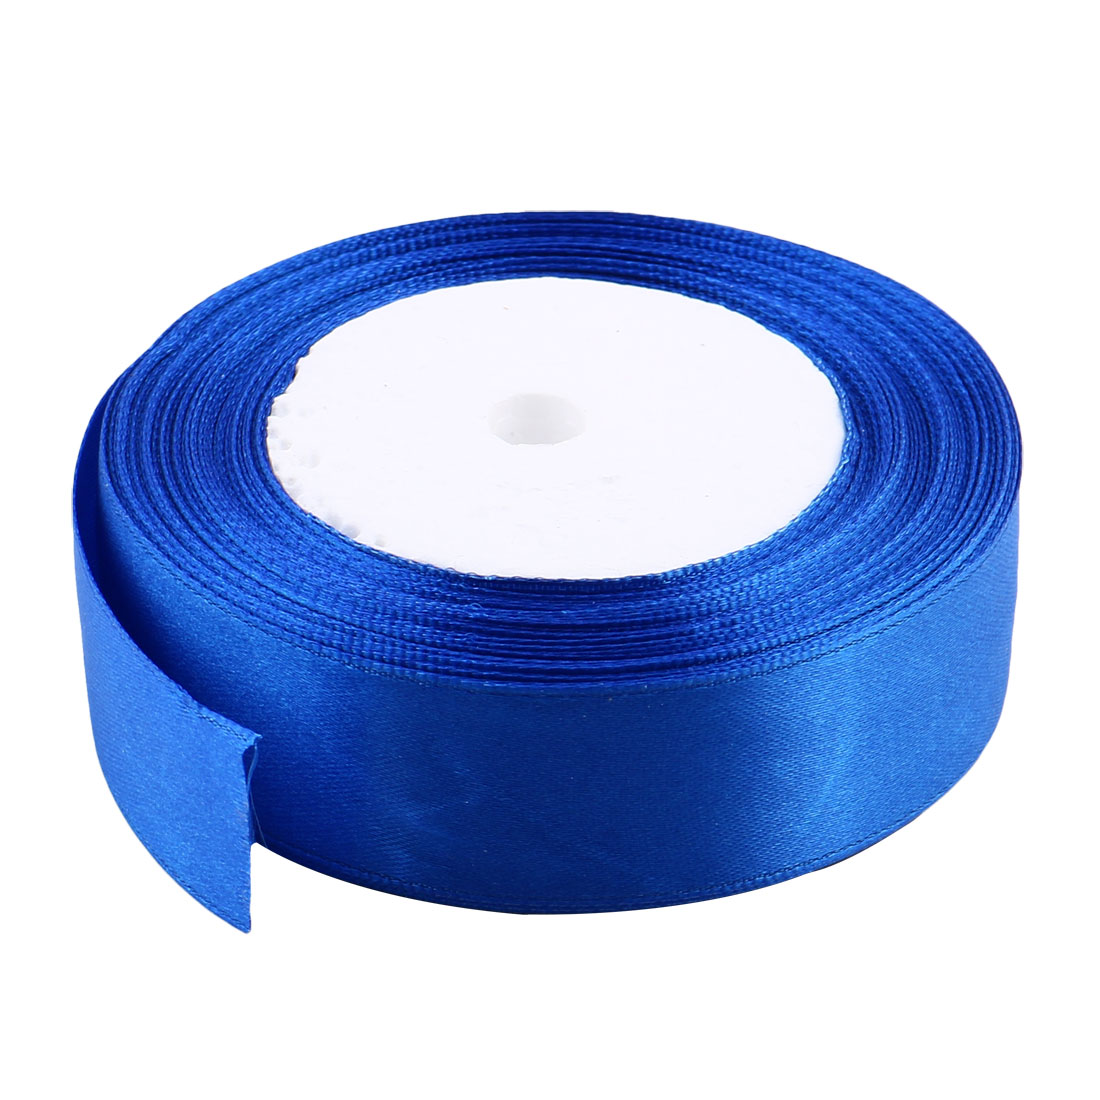 DIY Gift Packing Double Face Satin Ribbon Roll 25 Yards 23M 2.5cm Width Blue